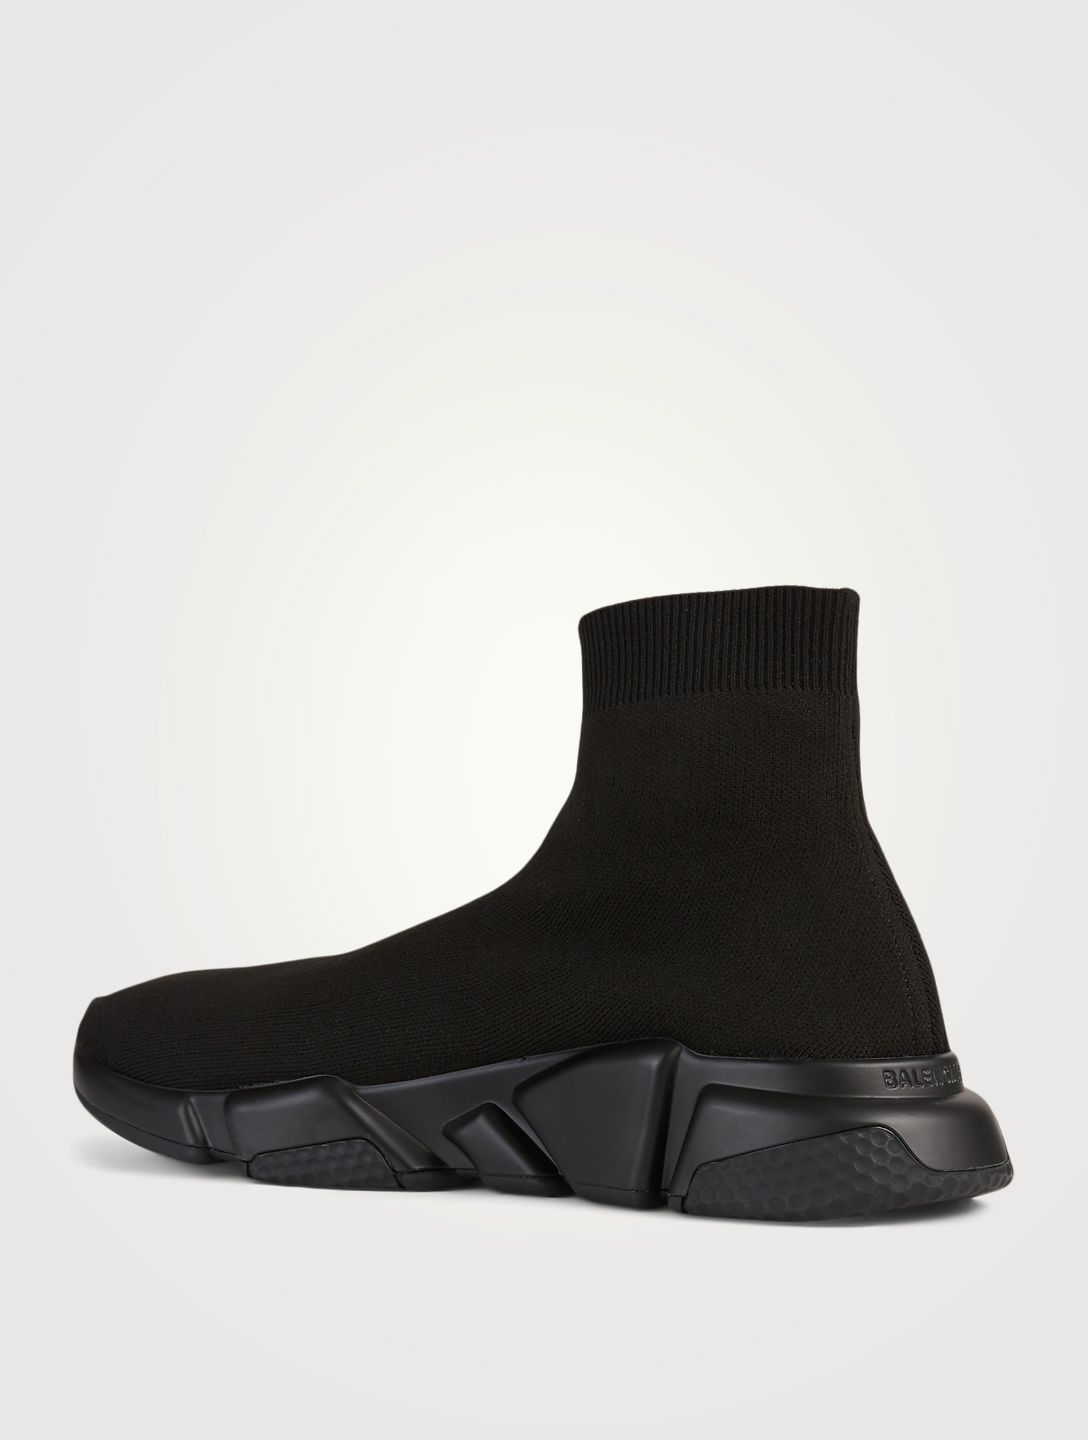 BALENCIAGA Speed Knit High-Top Sneakers Sock Sneakers With Logo Sole Men's Black